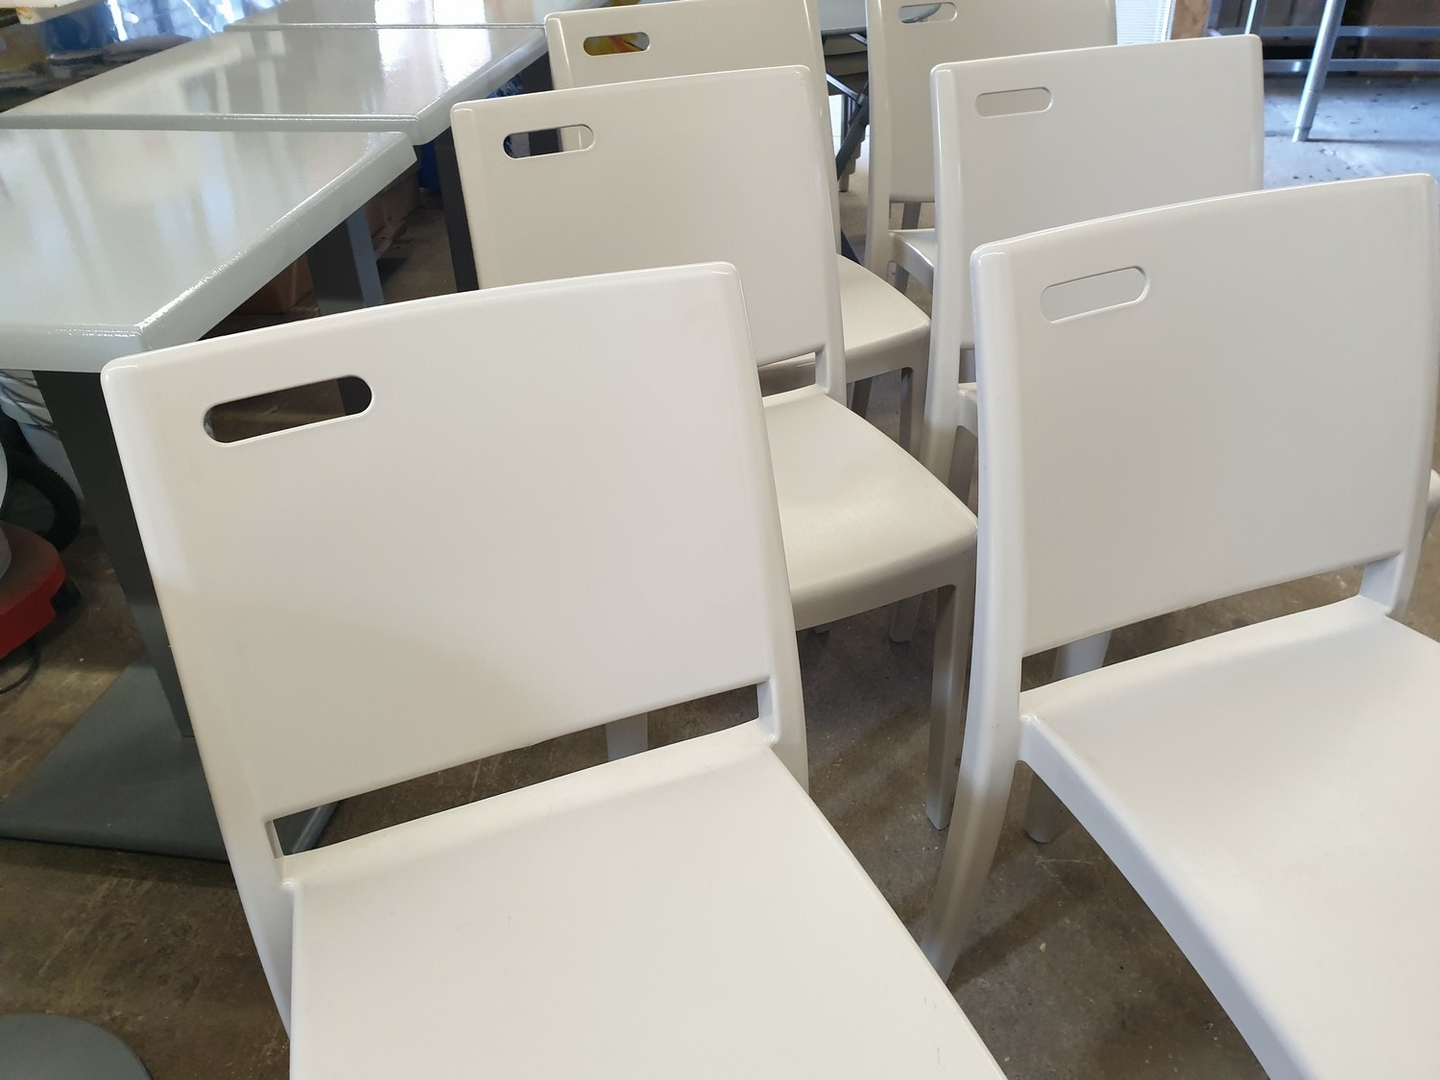 Table Exterieur De Restaurant Lot 6 Tables 12 Chaises Pvc Extérieur Terrasse Sm France Restaurant Bistro Pizza Occasion